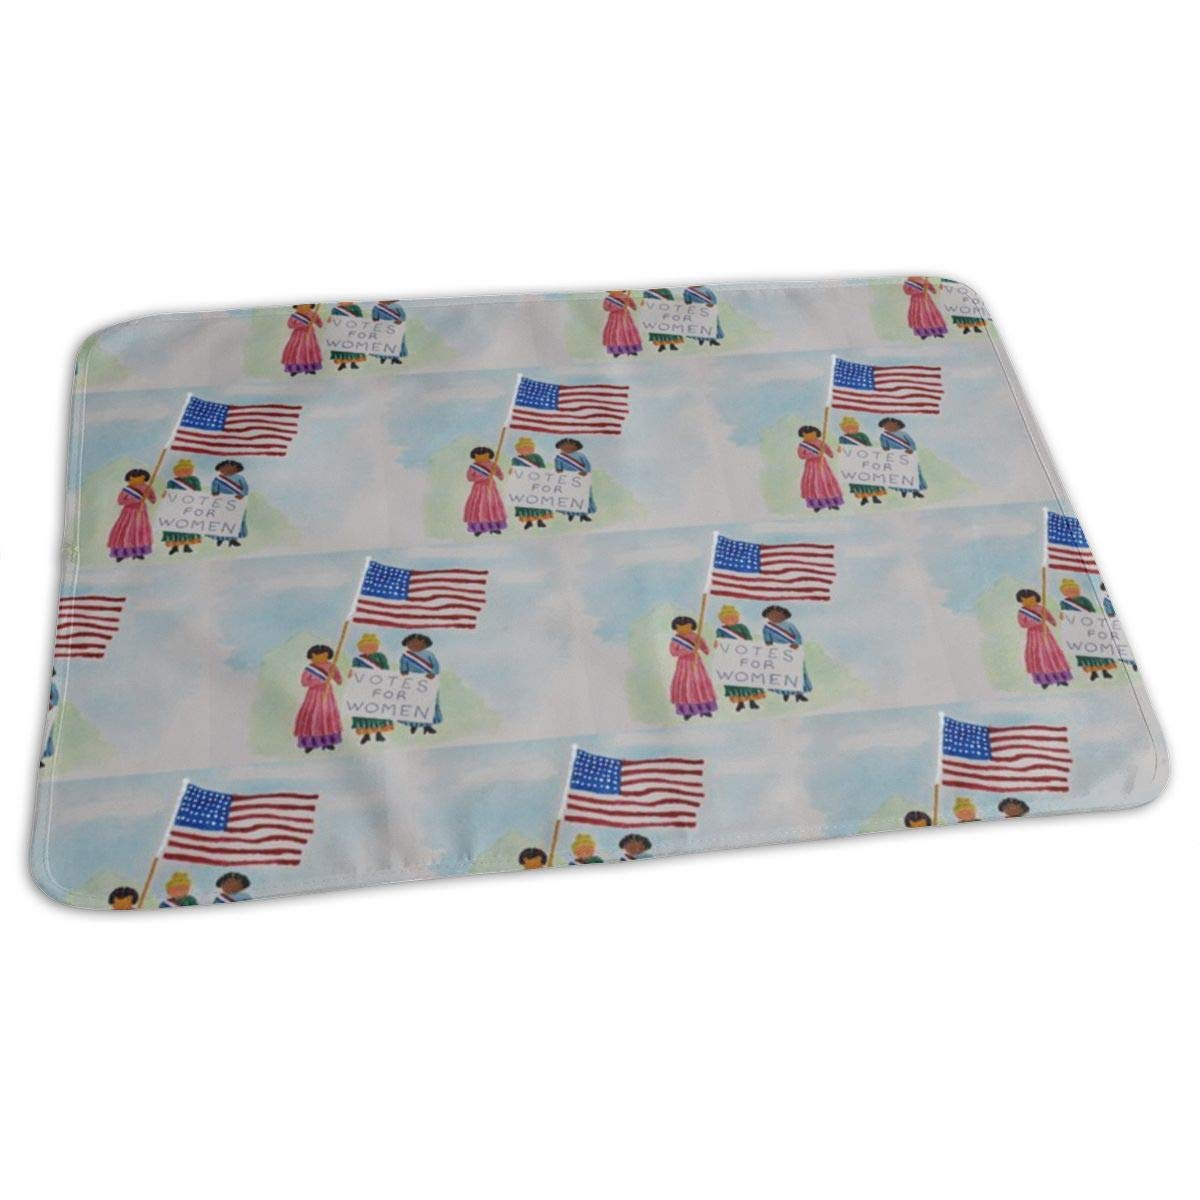 Watercolor Suffragettes Baby Portable Reusable Changing Pad Mat 19.7x27.5 inch